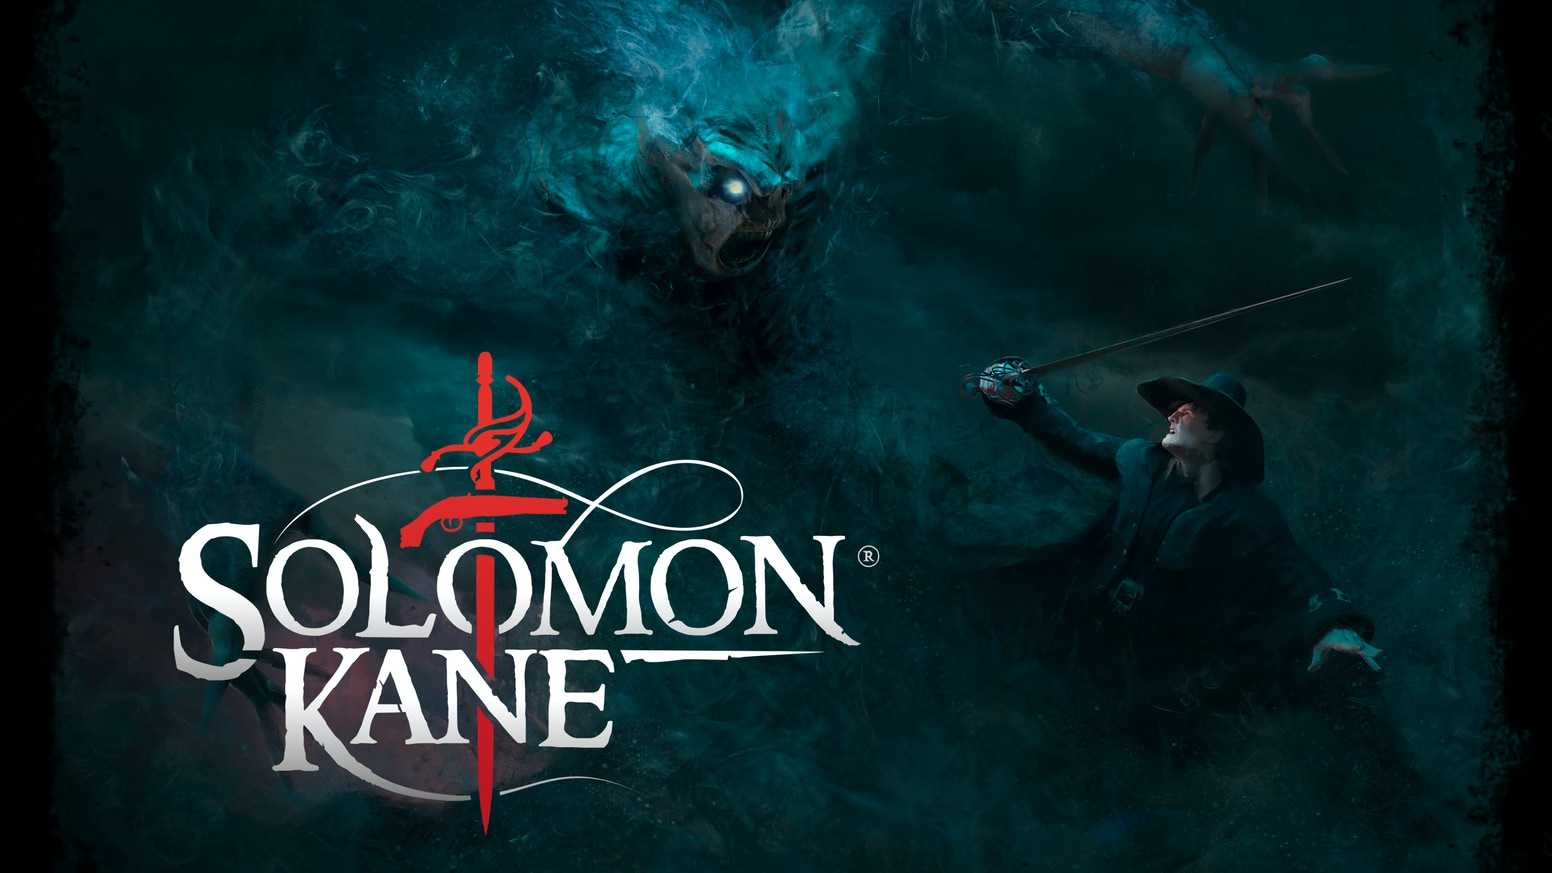 Play as a Virtue guiding Solomon Kane in a 1-4 player co-op game of storytelling, resource management & tactical miniatures play.